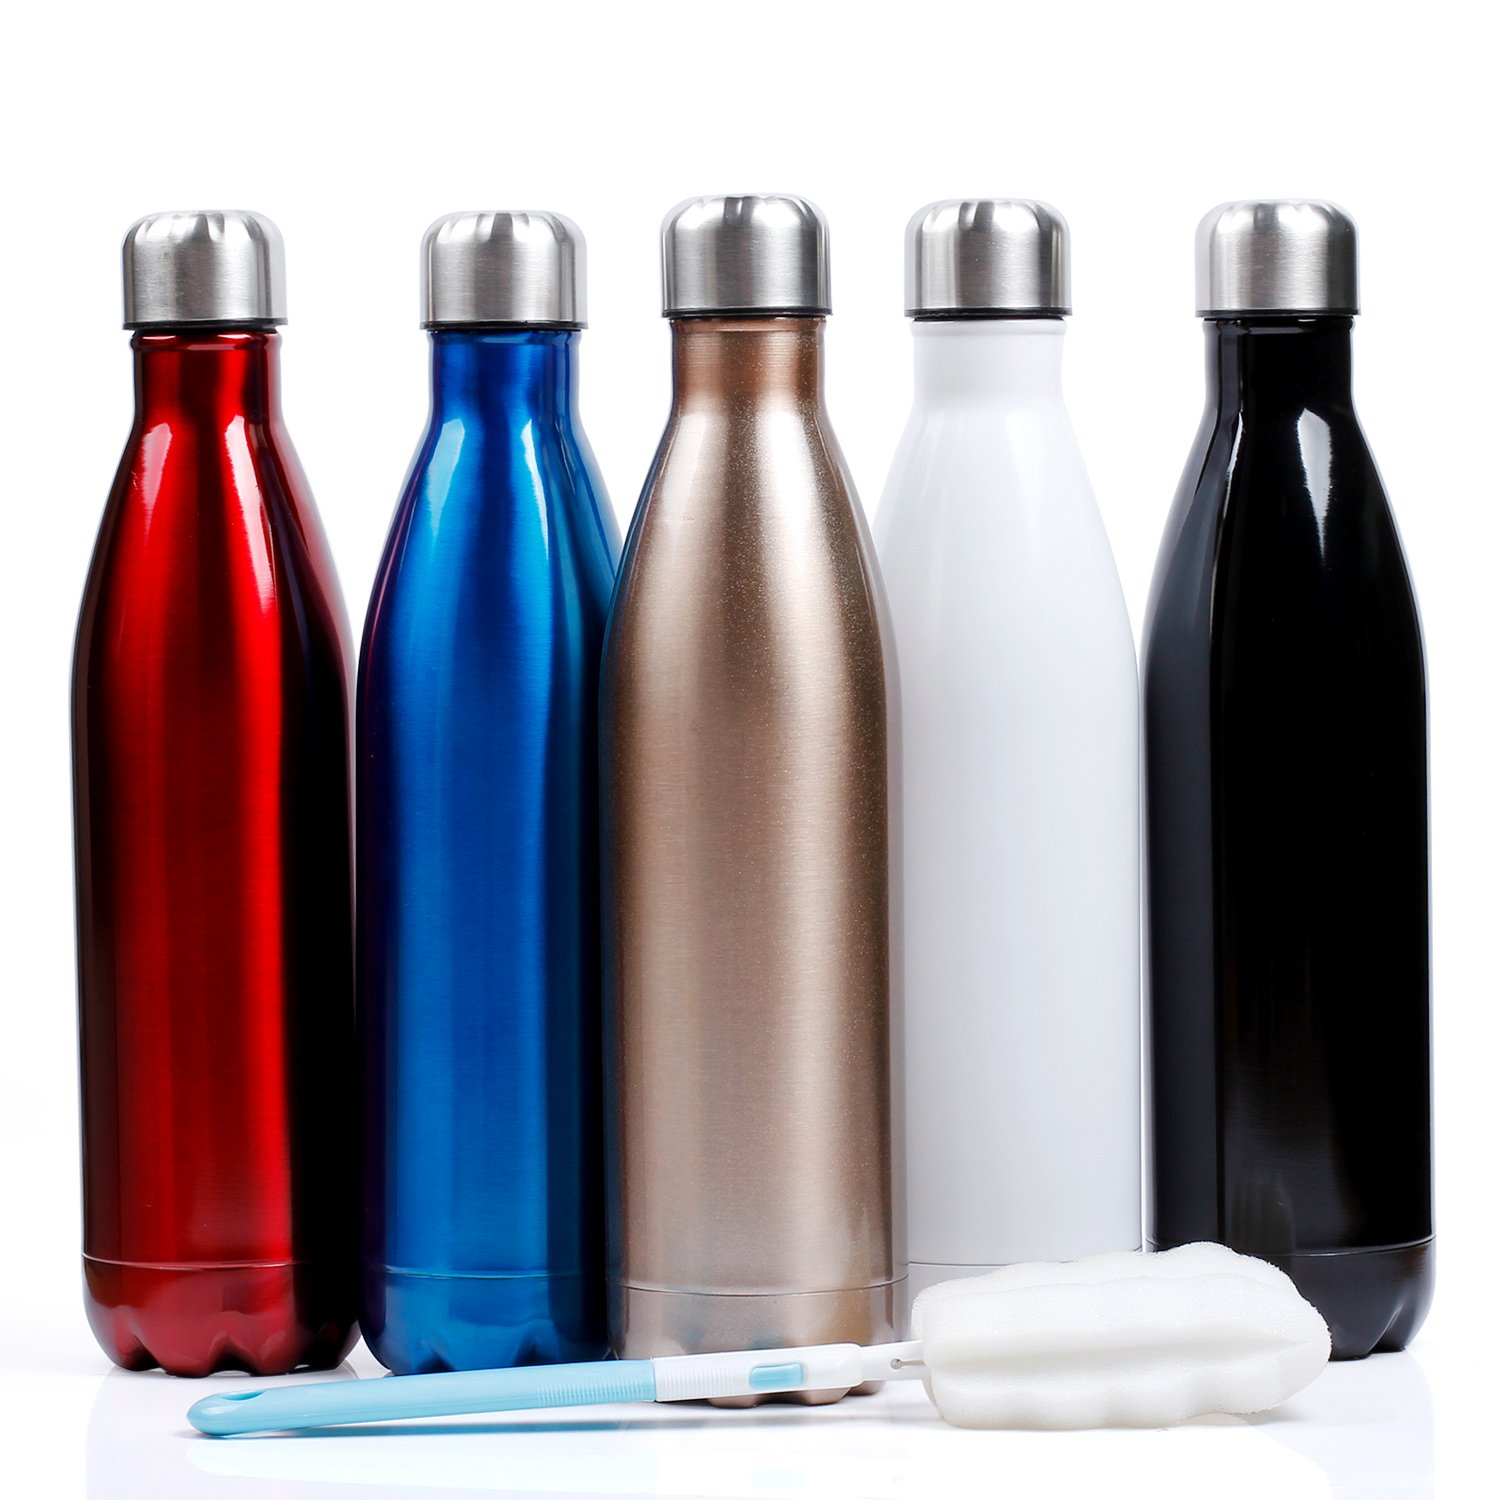 Sfee 25oz Vacuum Insulation Water Bottle - Double Wall, BPA-Free, Stainless Steel, Leak Proof-Large Cola Sports Travel Bottles Cup Perfect for Men, Outdoor, Fitness, Camping, Cycling + Cleaning Brush